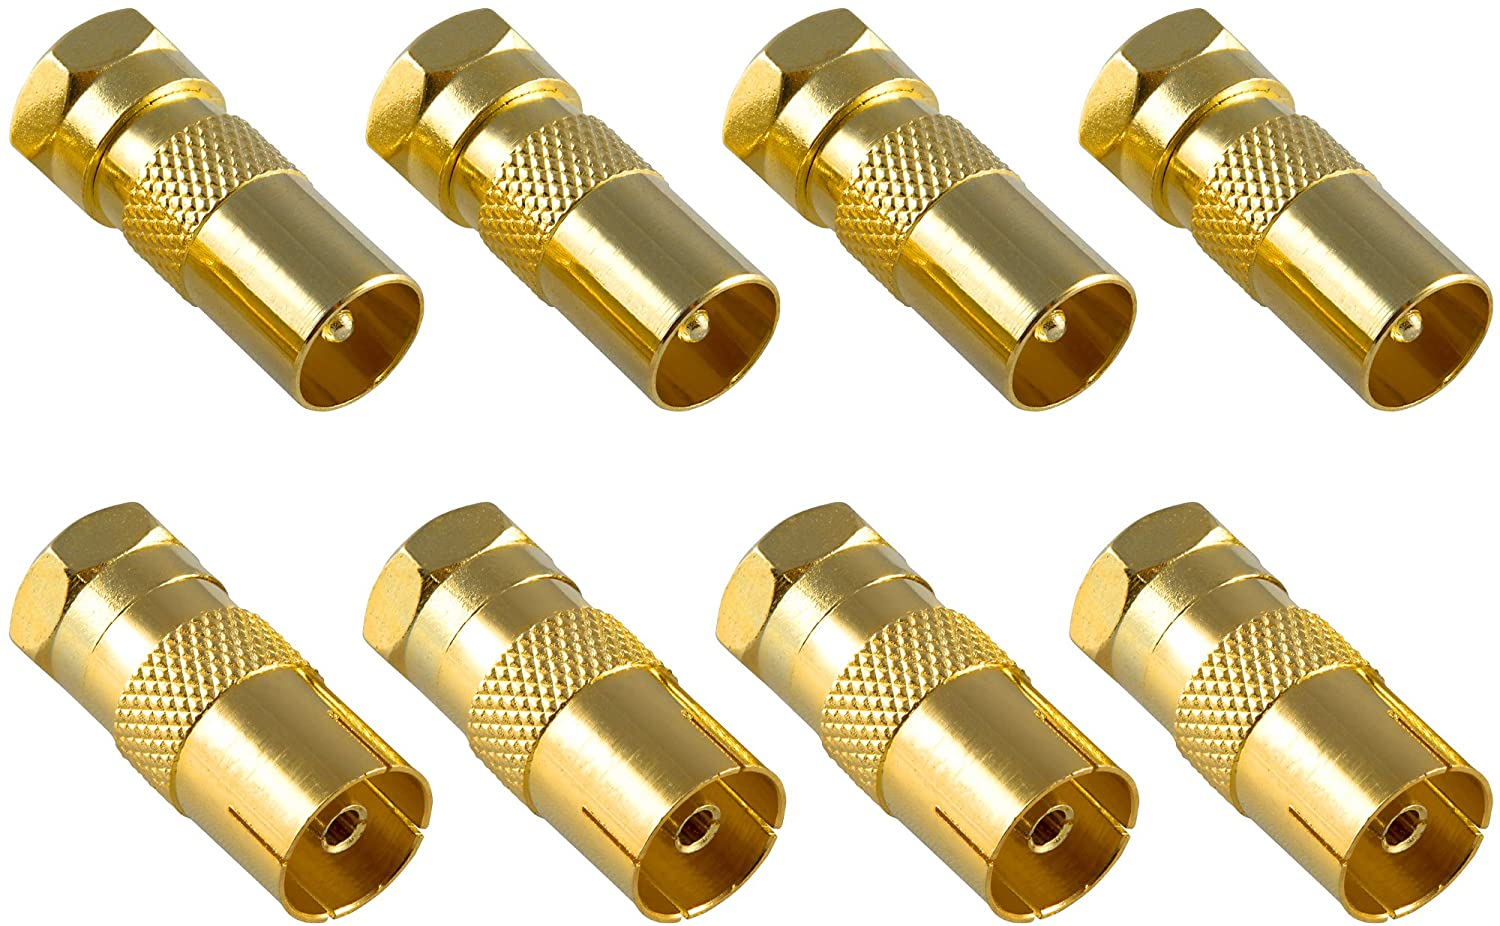 Poppstar - 8X Sat Adapter coaxial Antenna (4X F-Plug to IEC Antenna Plug, 4X to Antenna Socket), Gold Plated